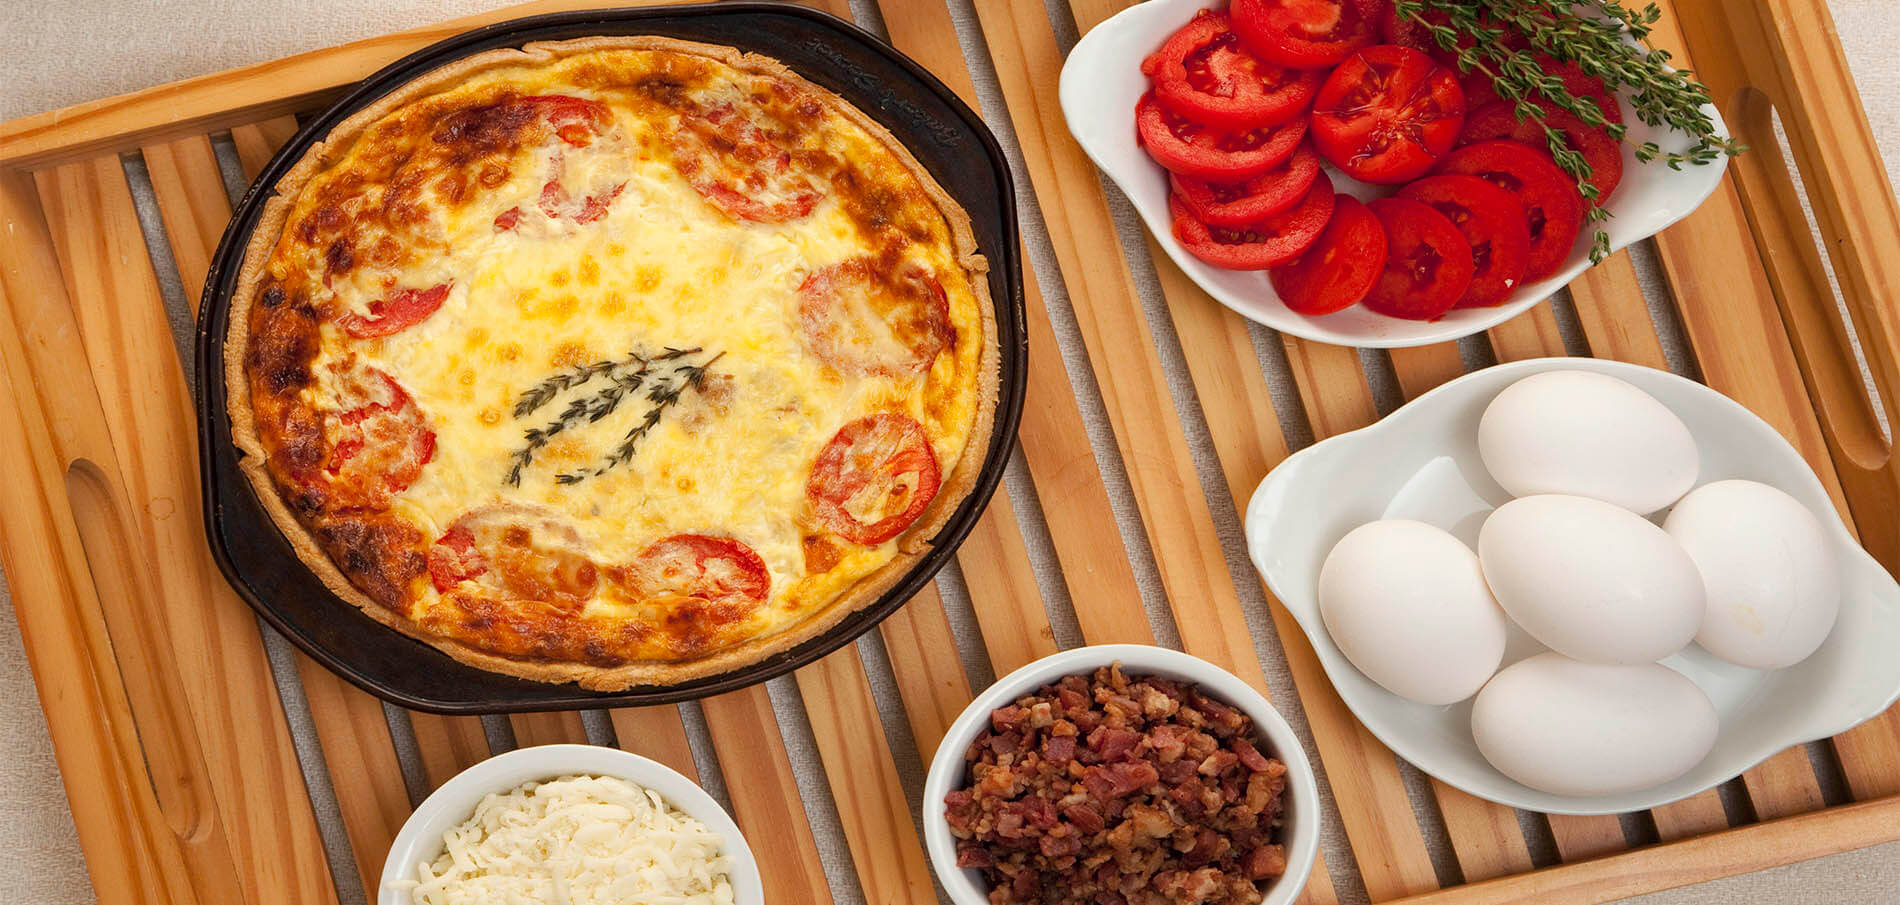 tomato and egg quiche in black cast iron dish surrounded by the ingredients in individual white bowls, including tomatoes, eggs, bacon and mozzarella cheese on light wooden slatted tray